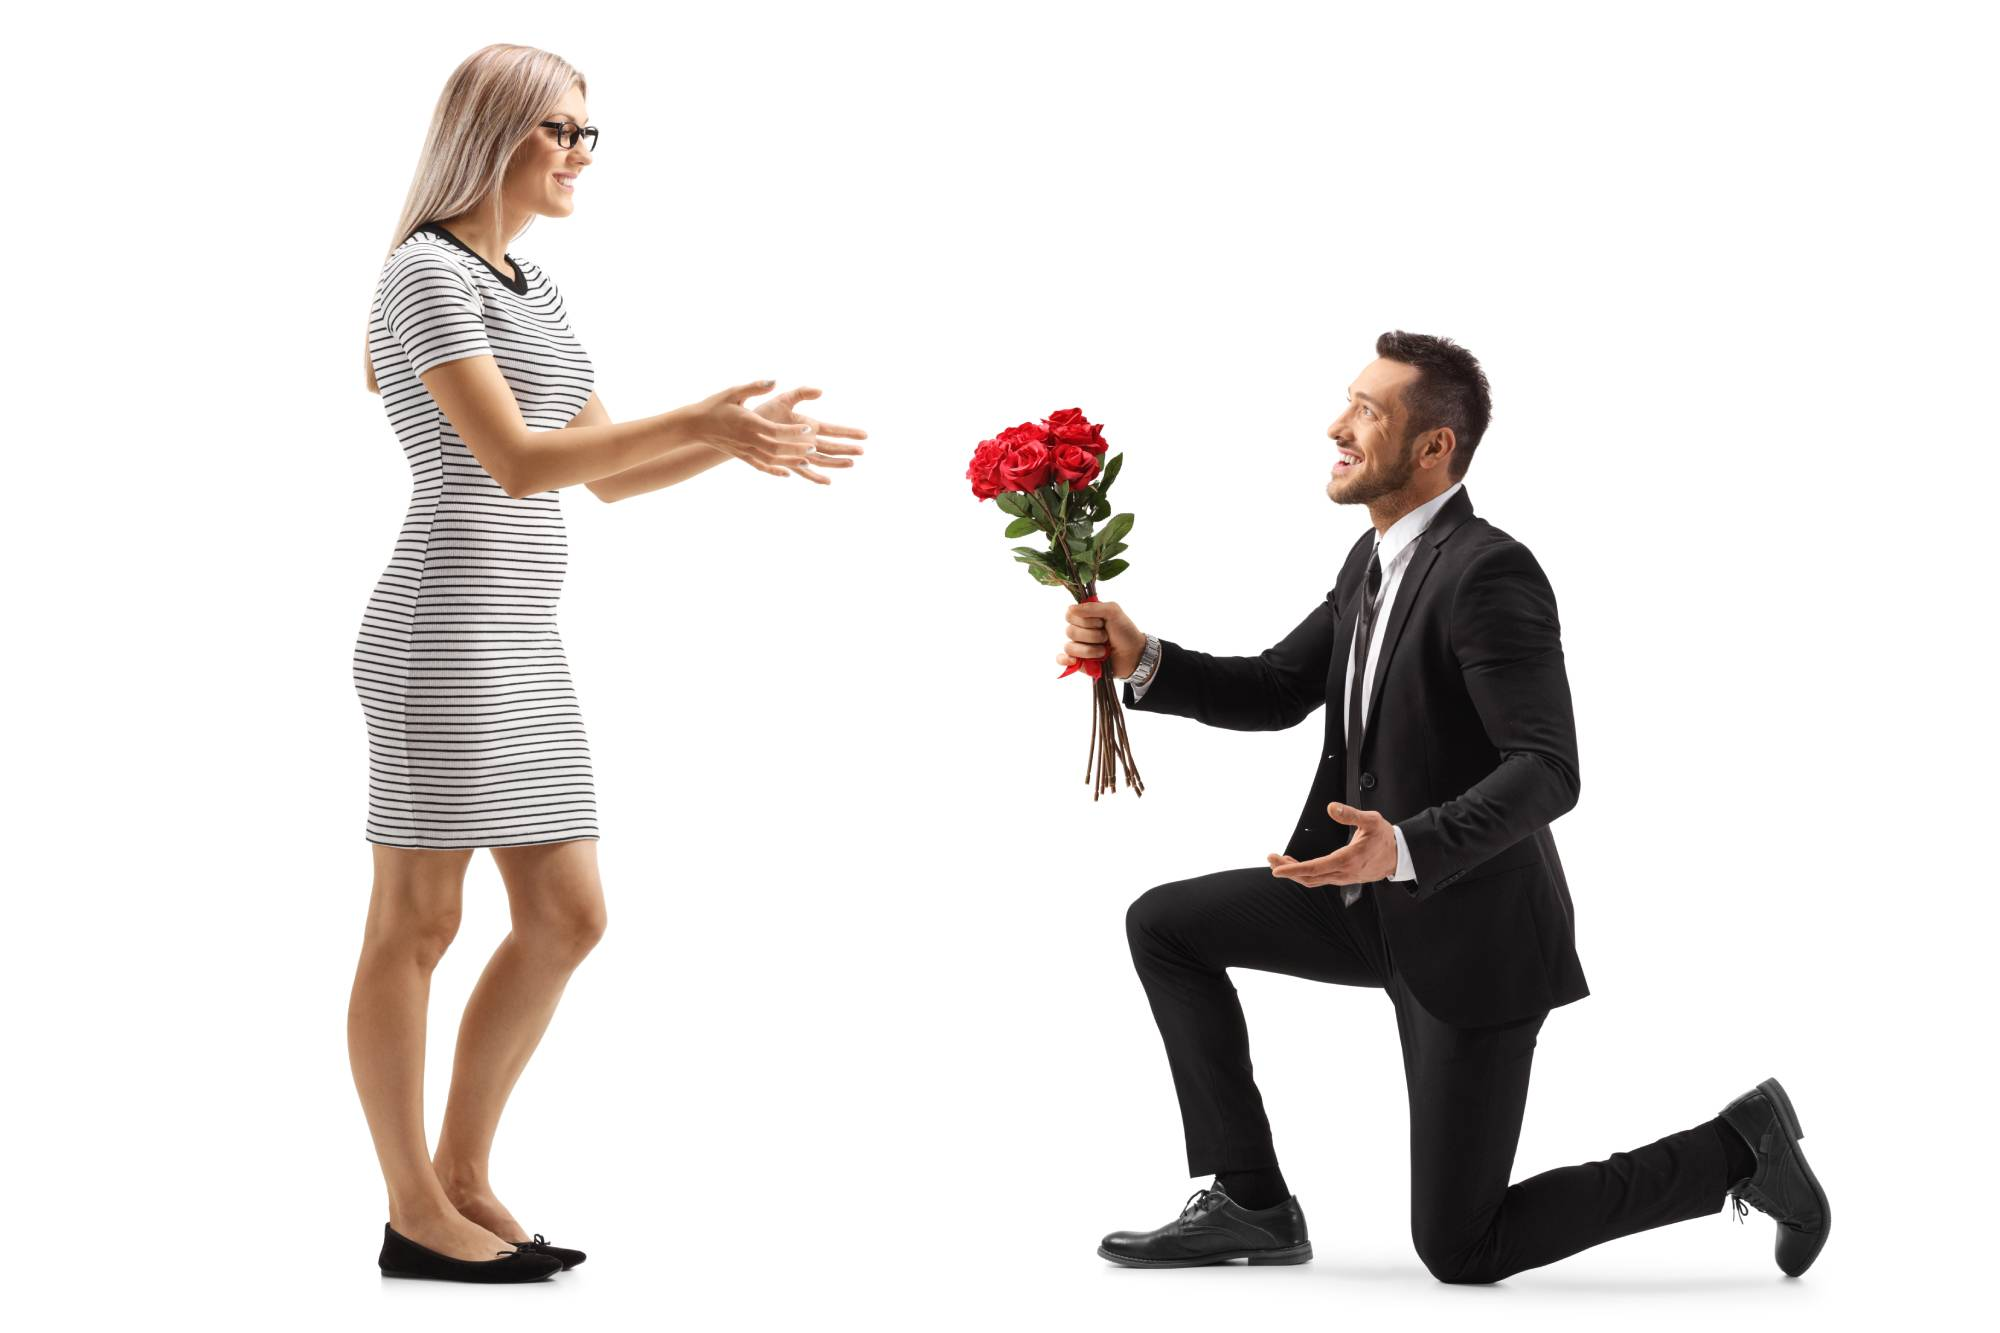 man kneels with red bouquet in front of blonde woman